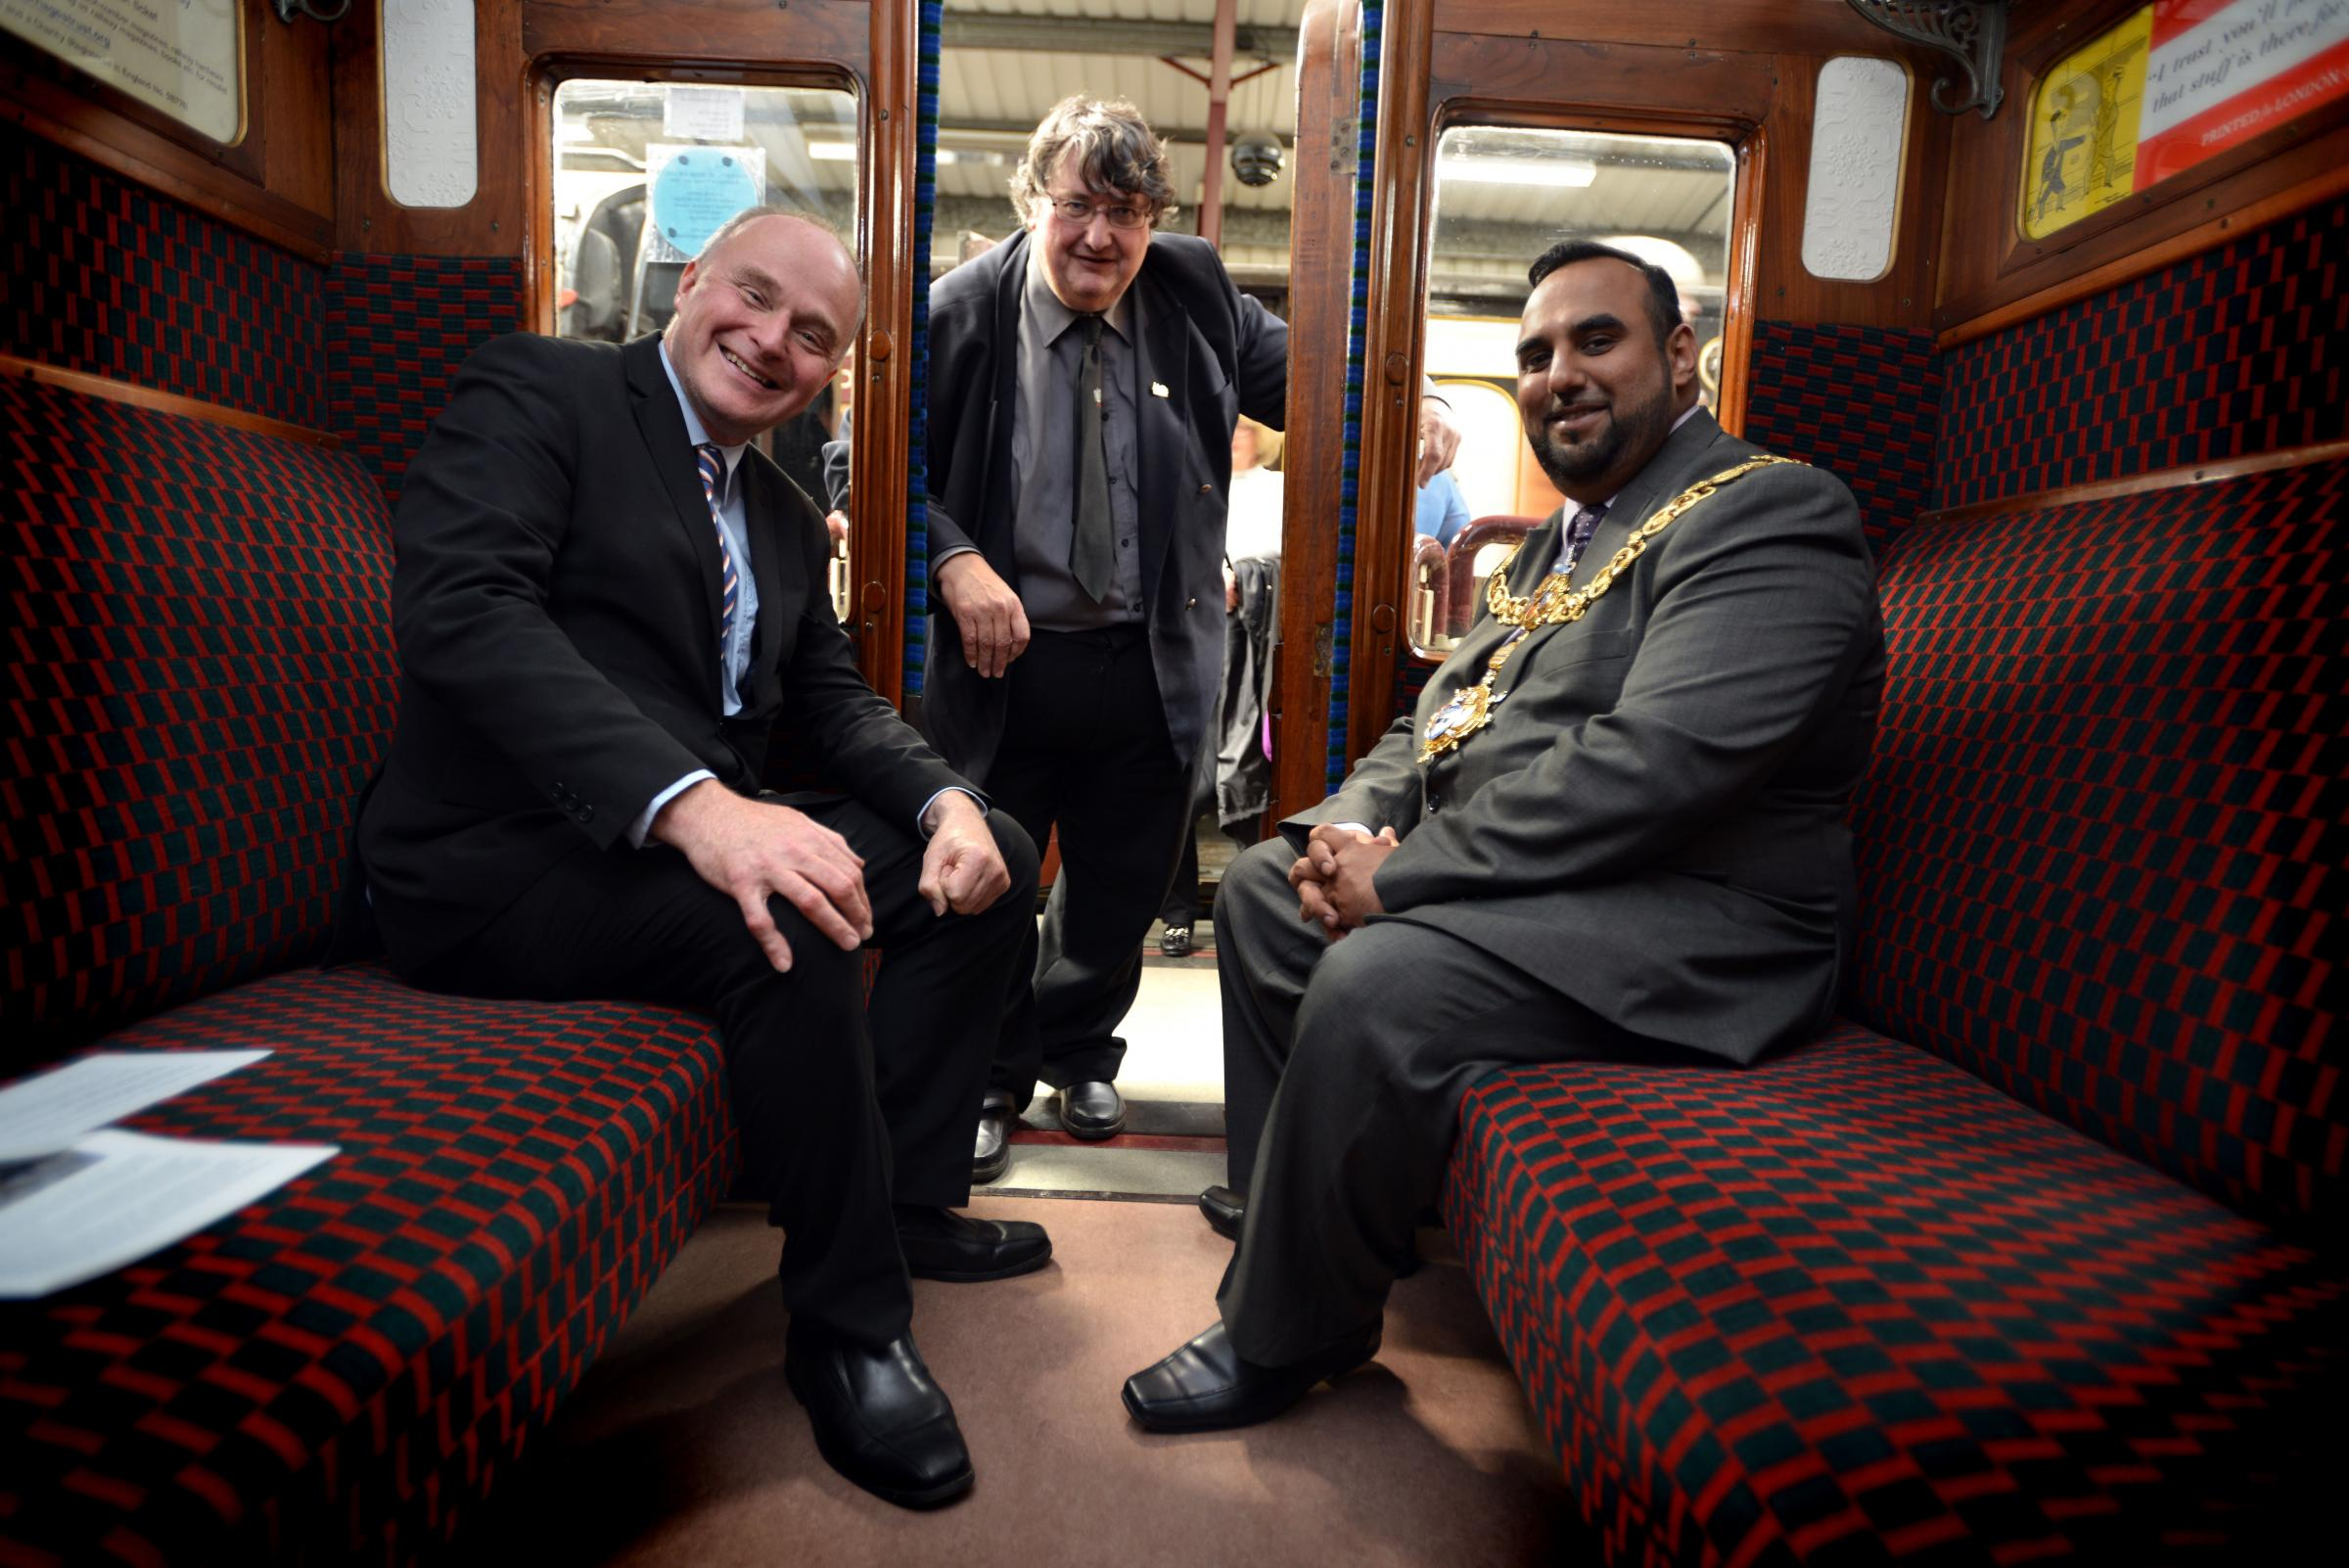 John Grogan MP and the Mayor of Keighley Councillor Mohammed Nazam seated with Keith Whitmore between themas they visit the Ingrow station exhibitions for the opening of National Heritage Days at the Keighley Worth Valley railway..